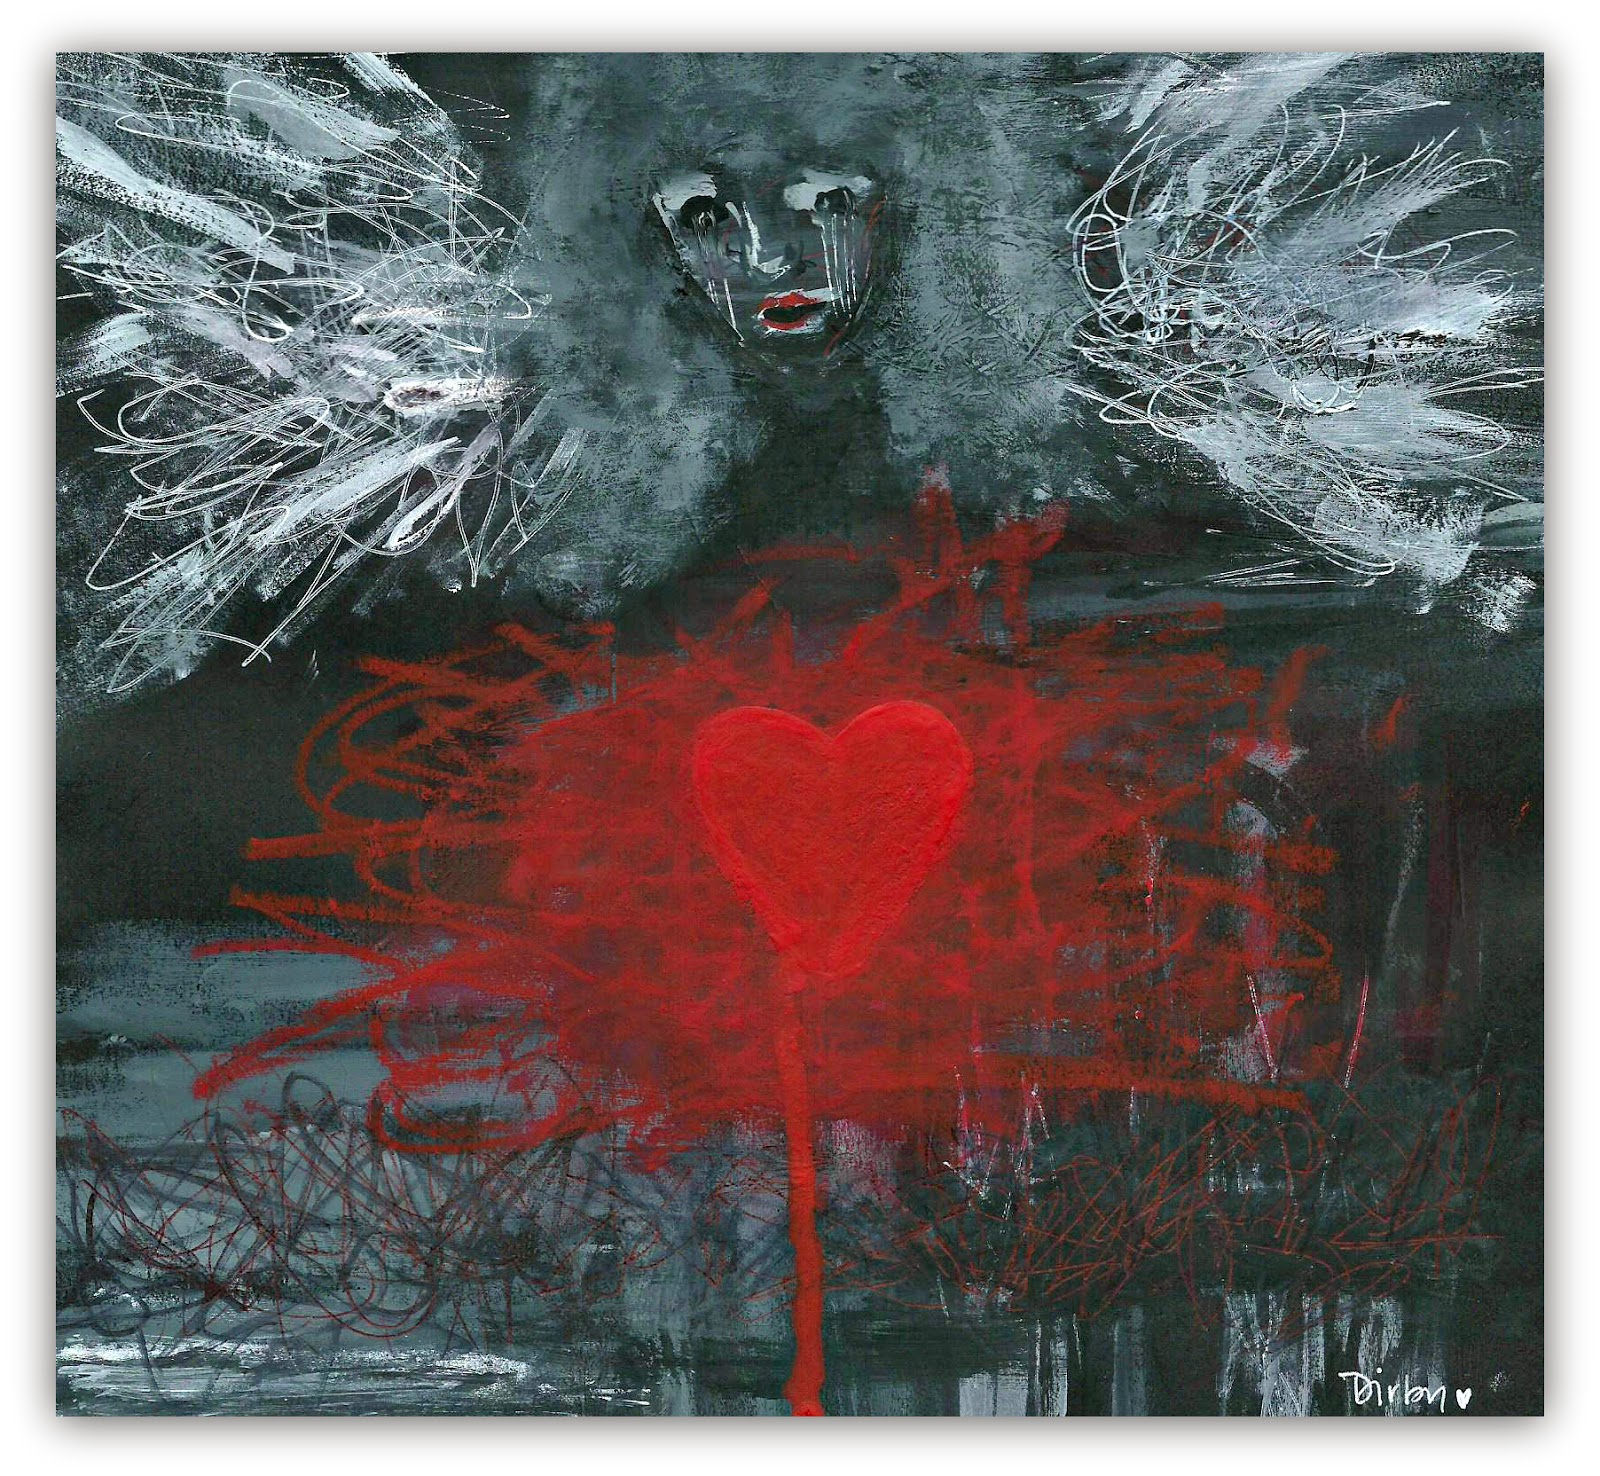 https://www.etsy.com/listing/184237728/original-painting-tears-such-as-angels